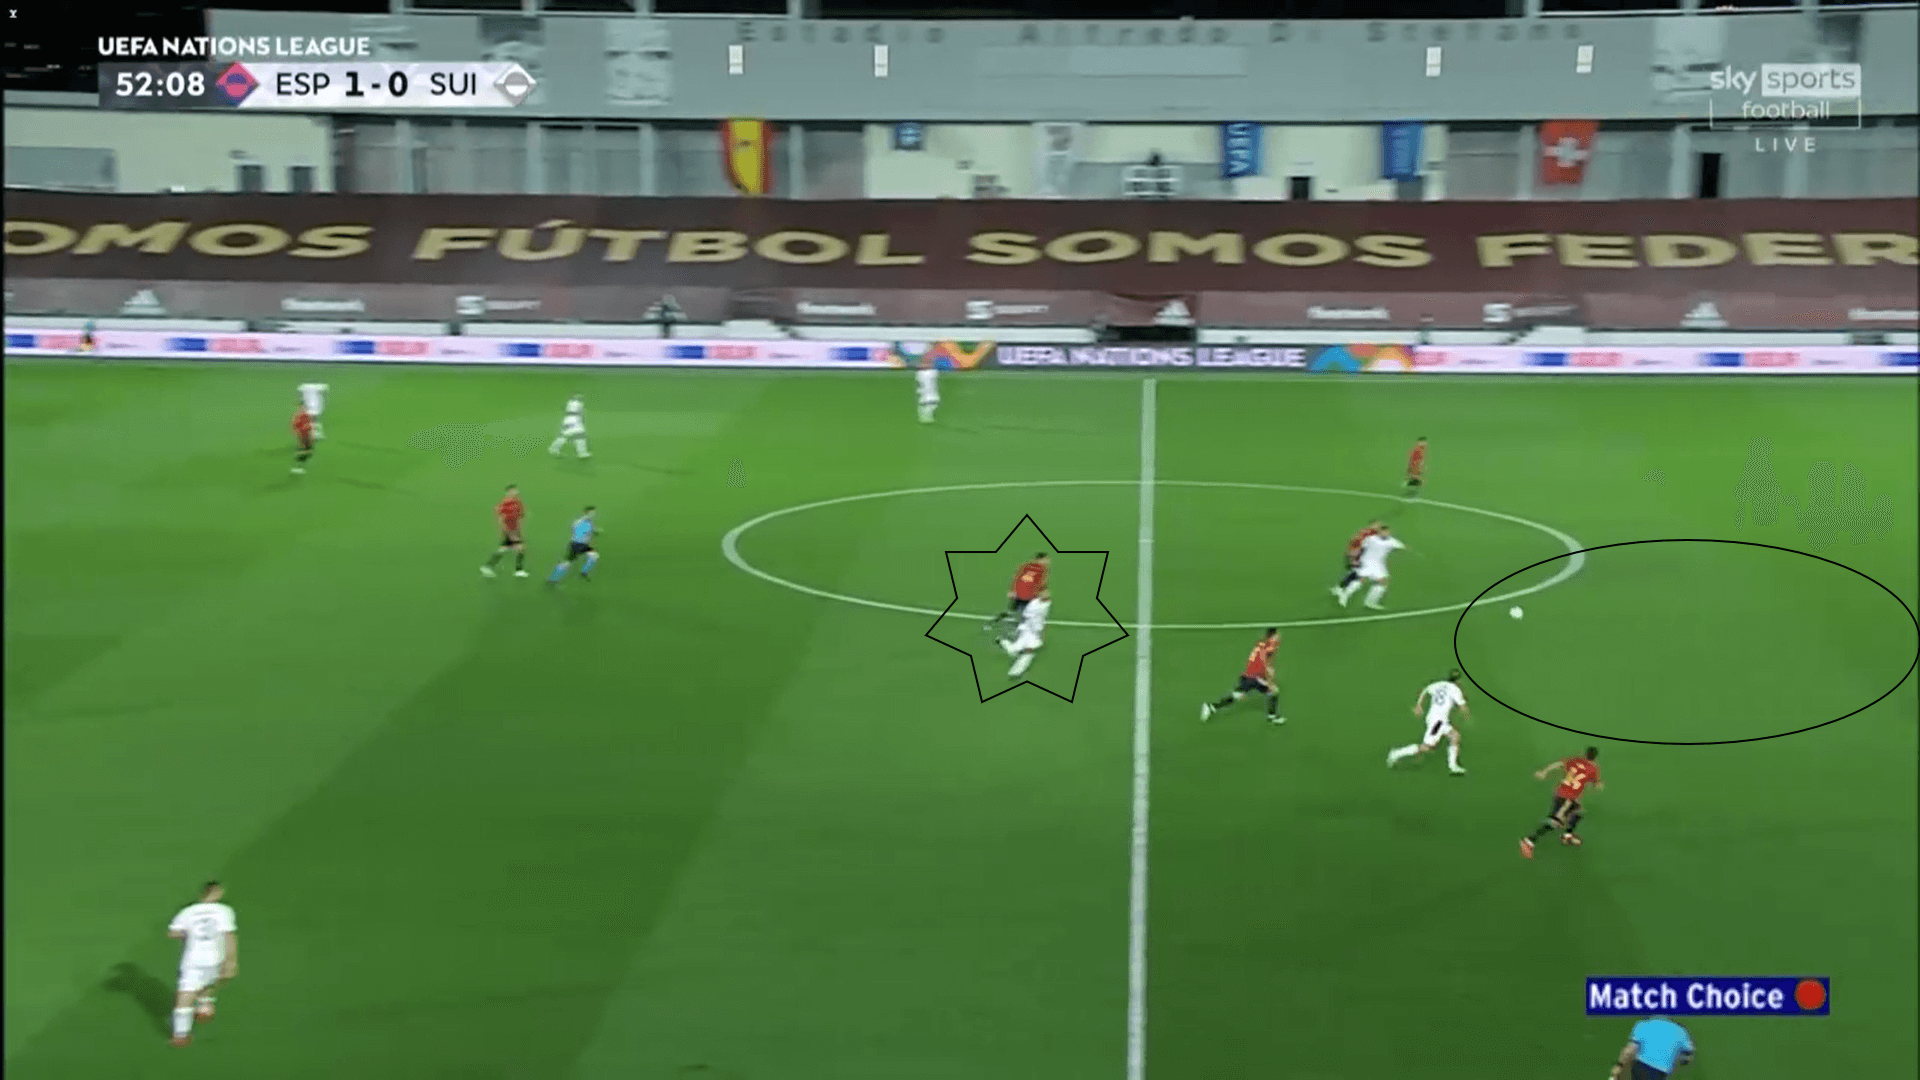 UEFA Nations League 2020/21: Spain vs Switzerland - tactical analysis tactics